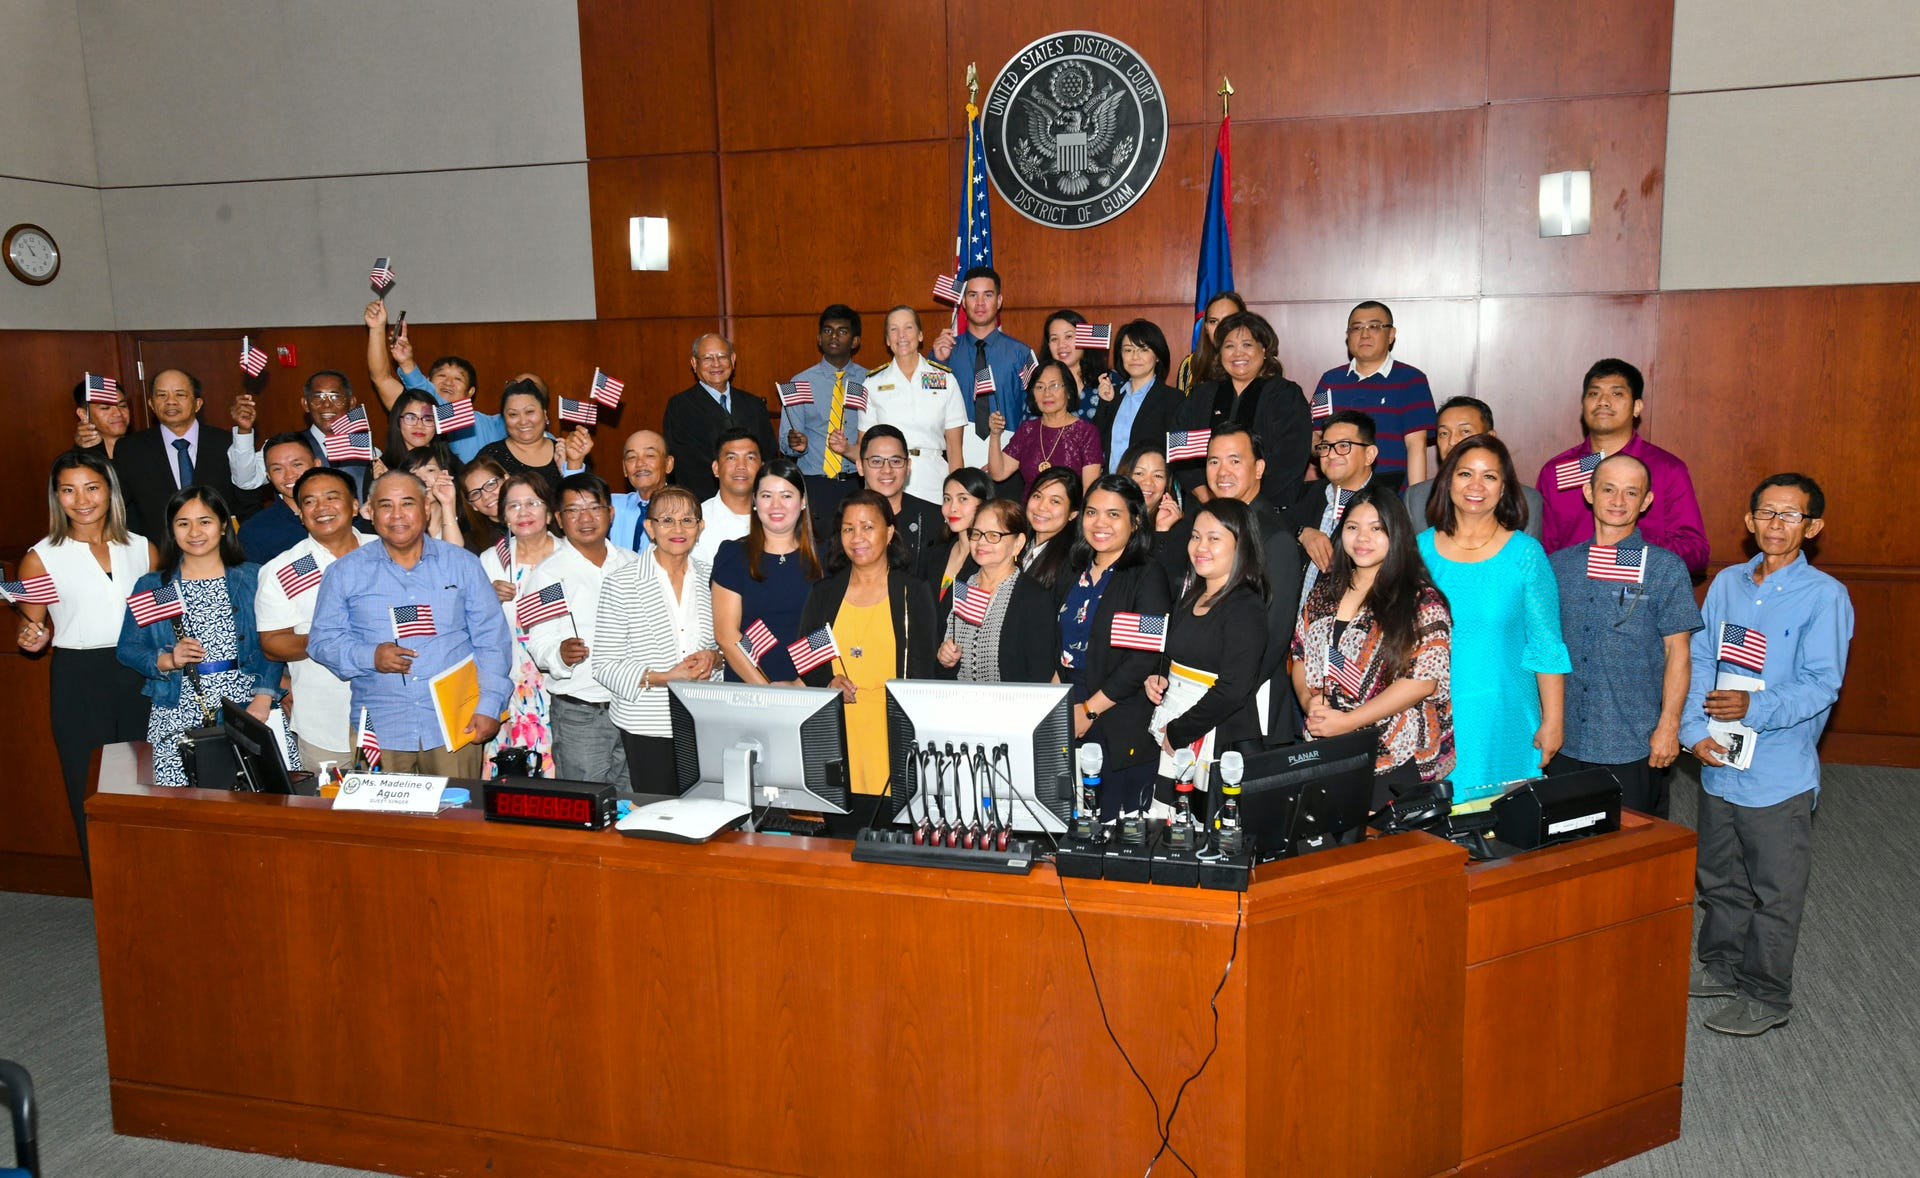 4th of July naturalization ceremony